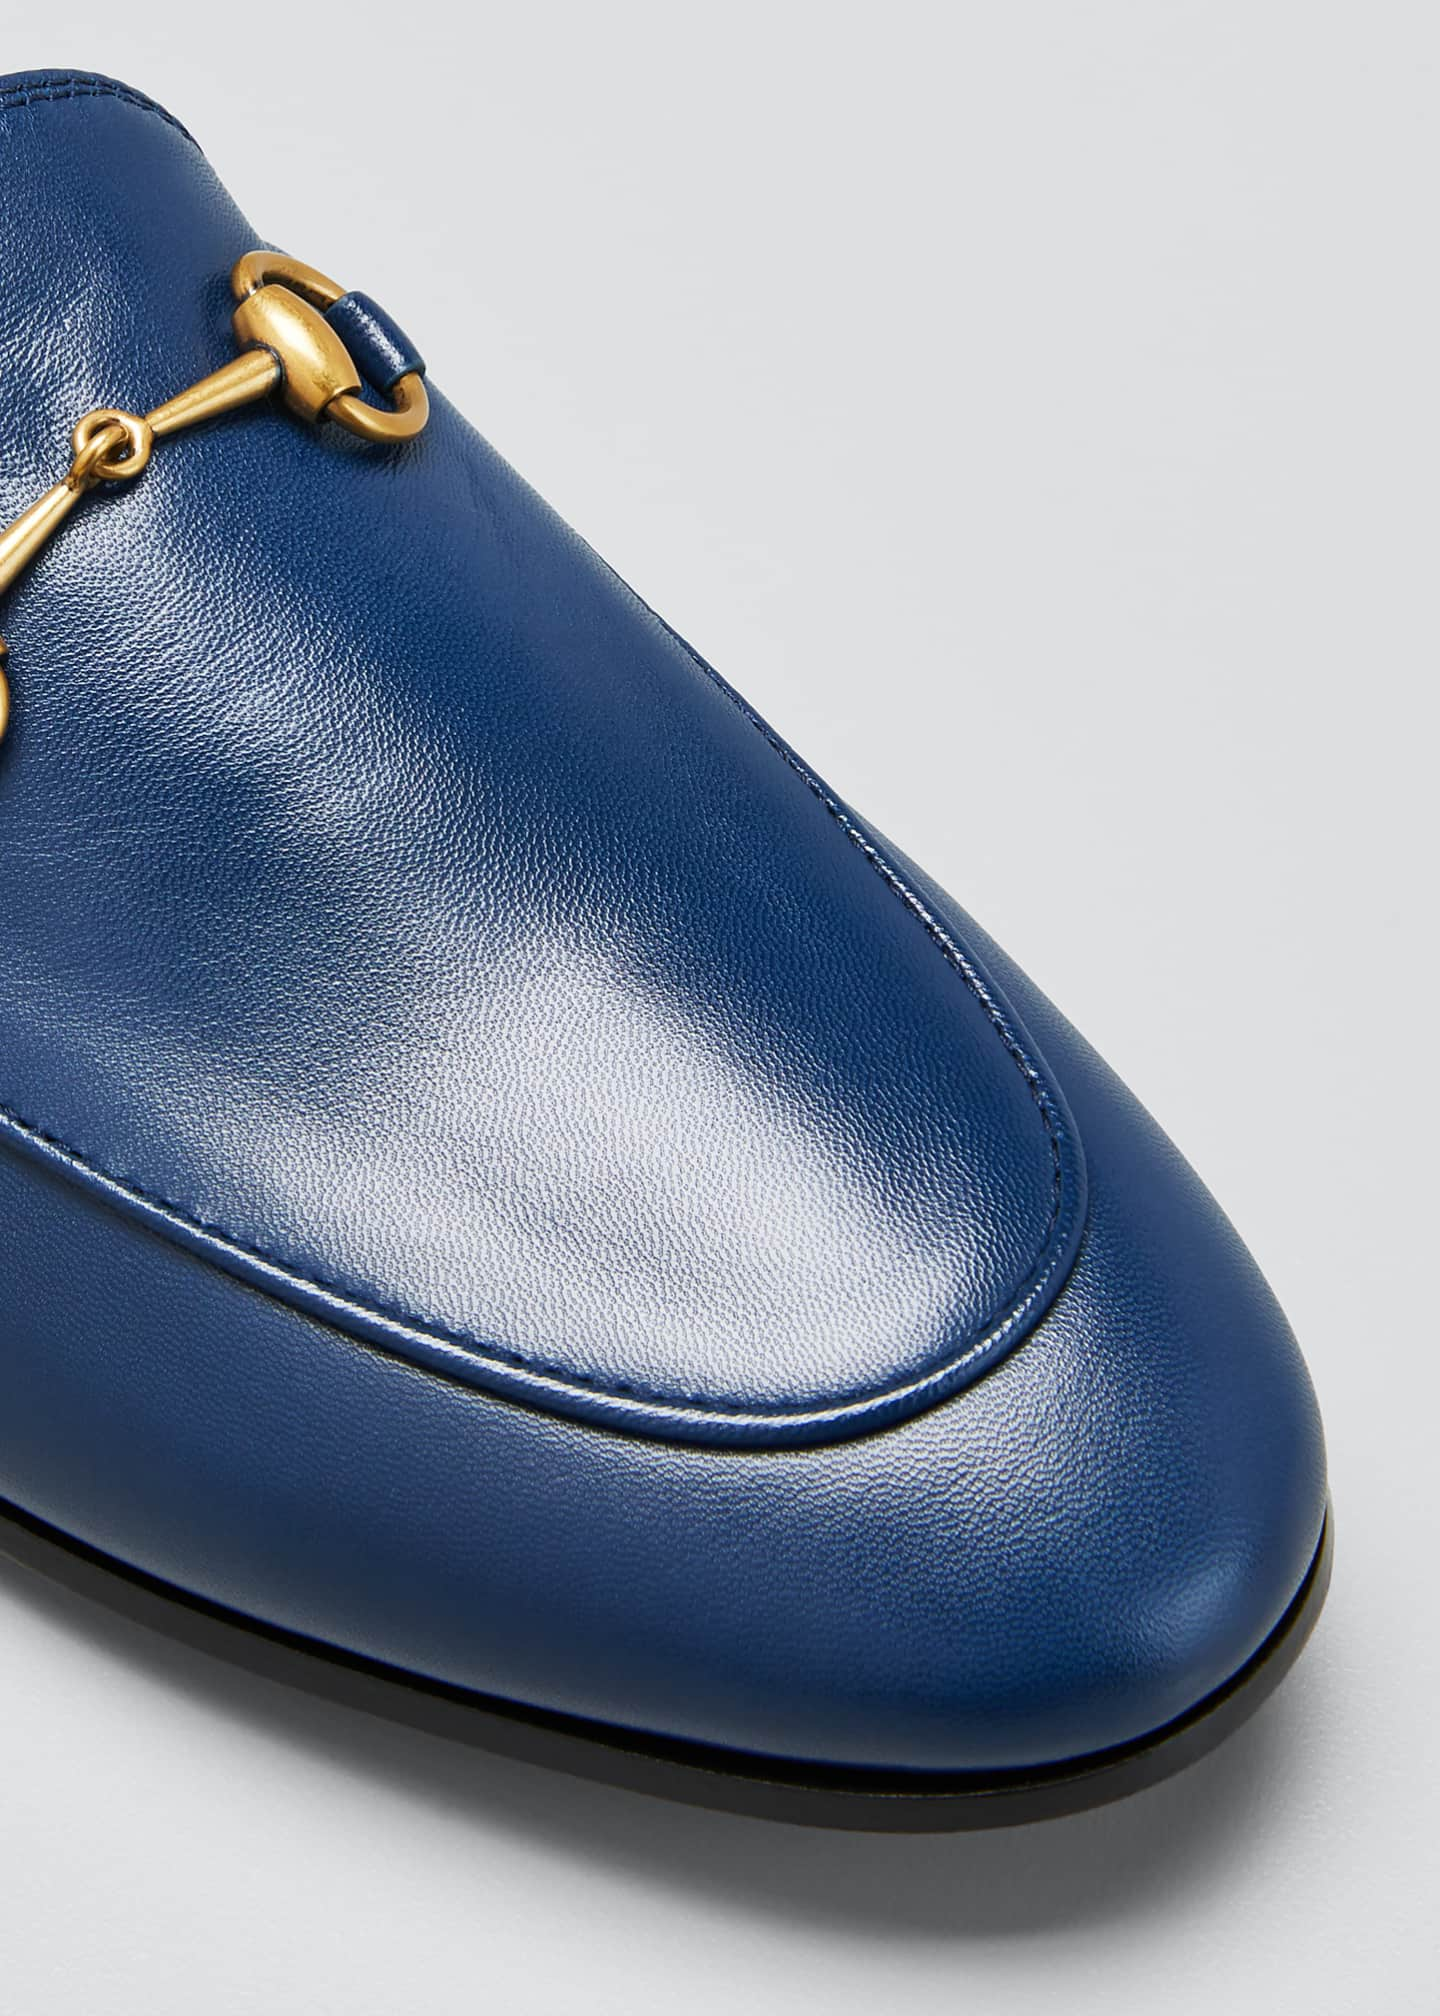 Image 3 of 3: Jordaan Flat Leather Loafers